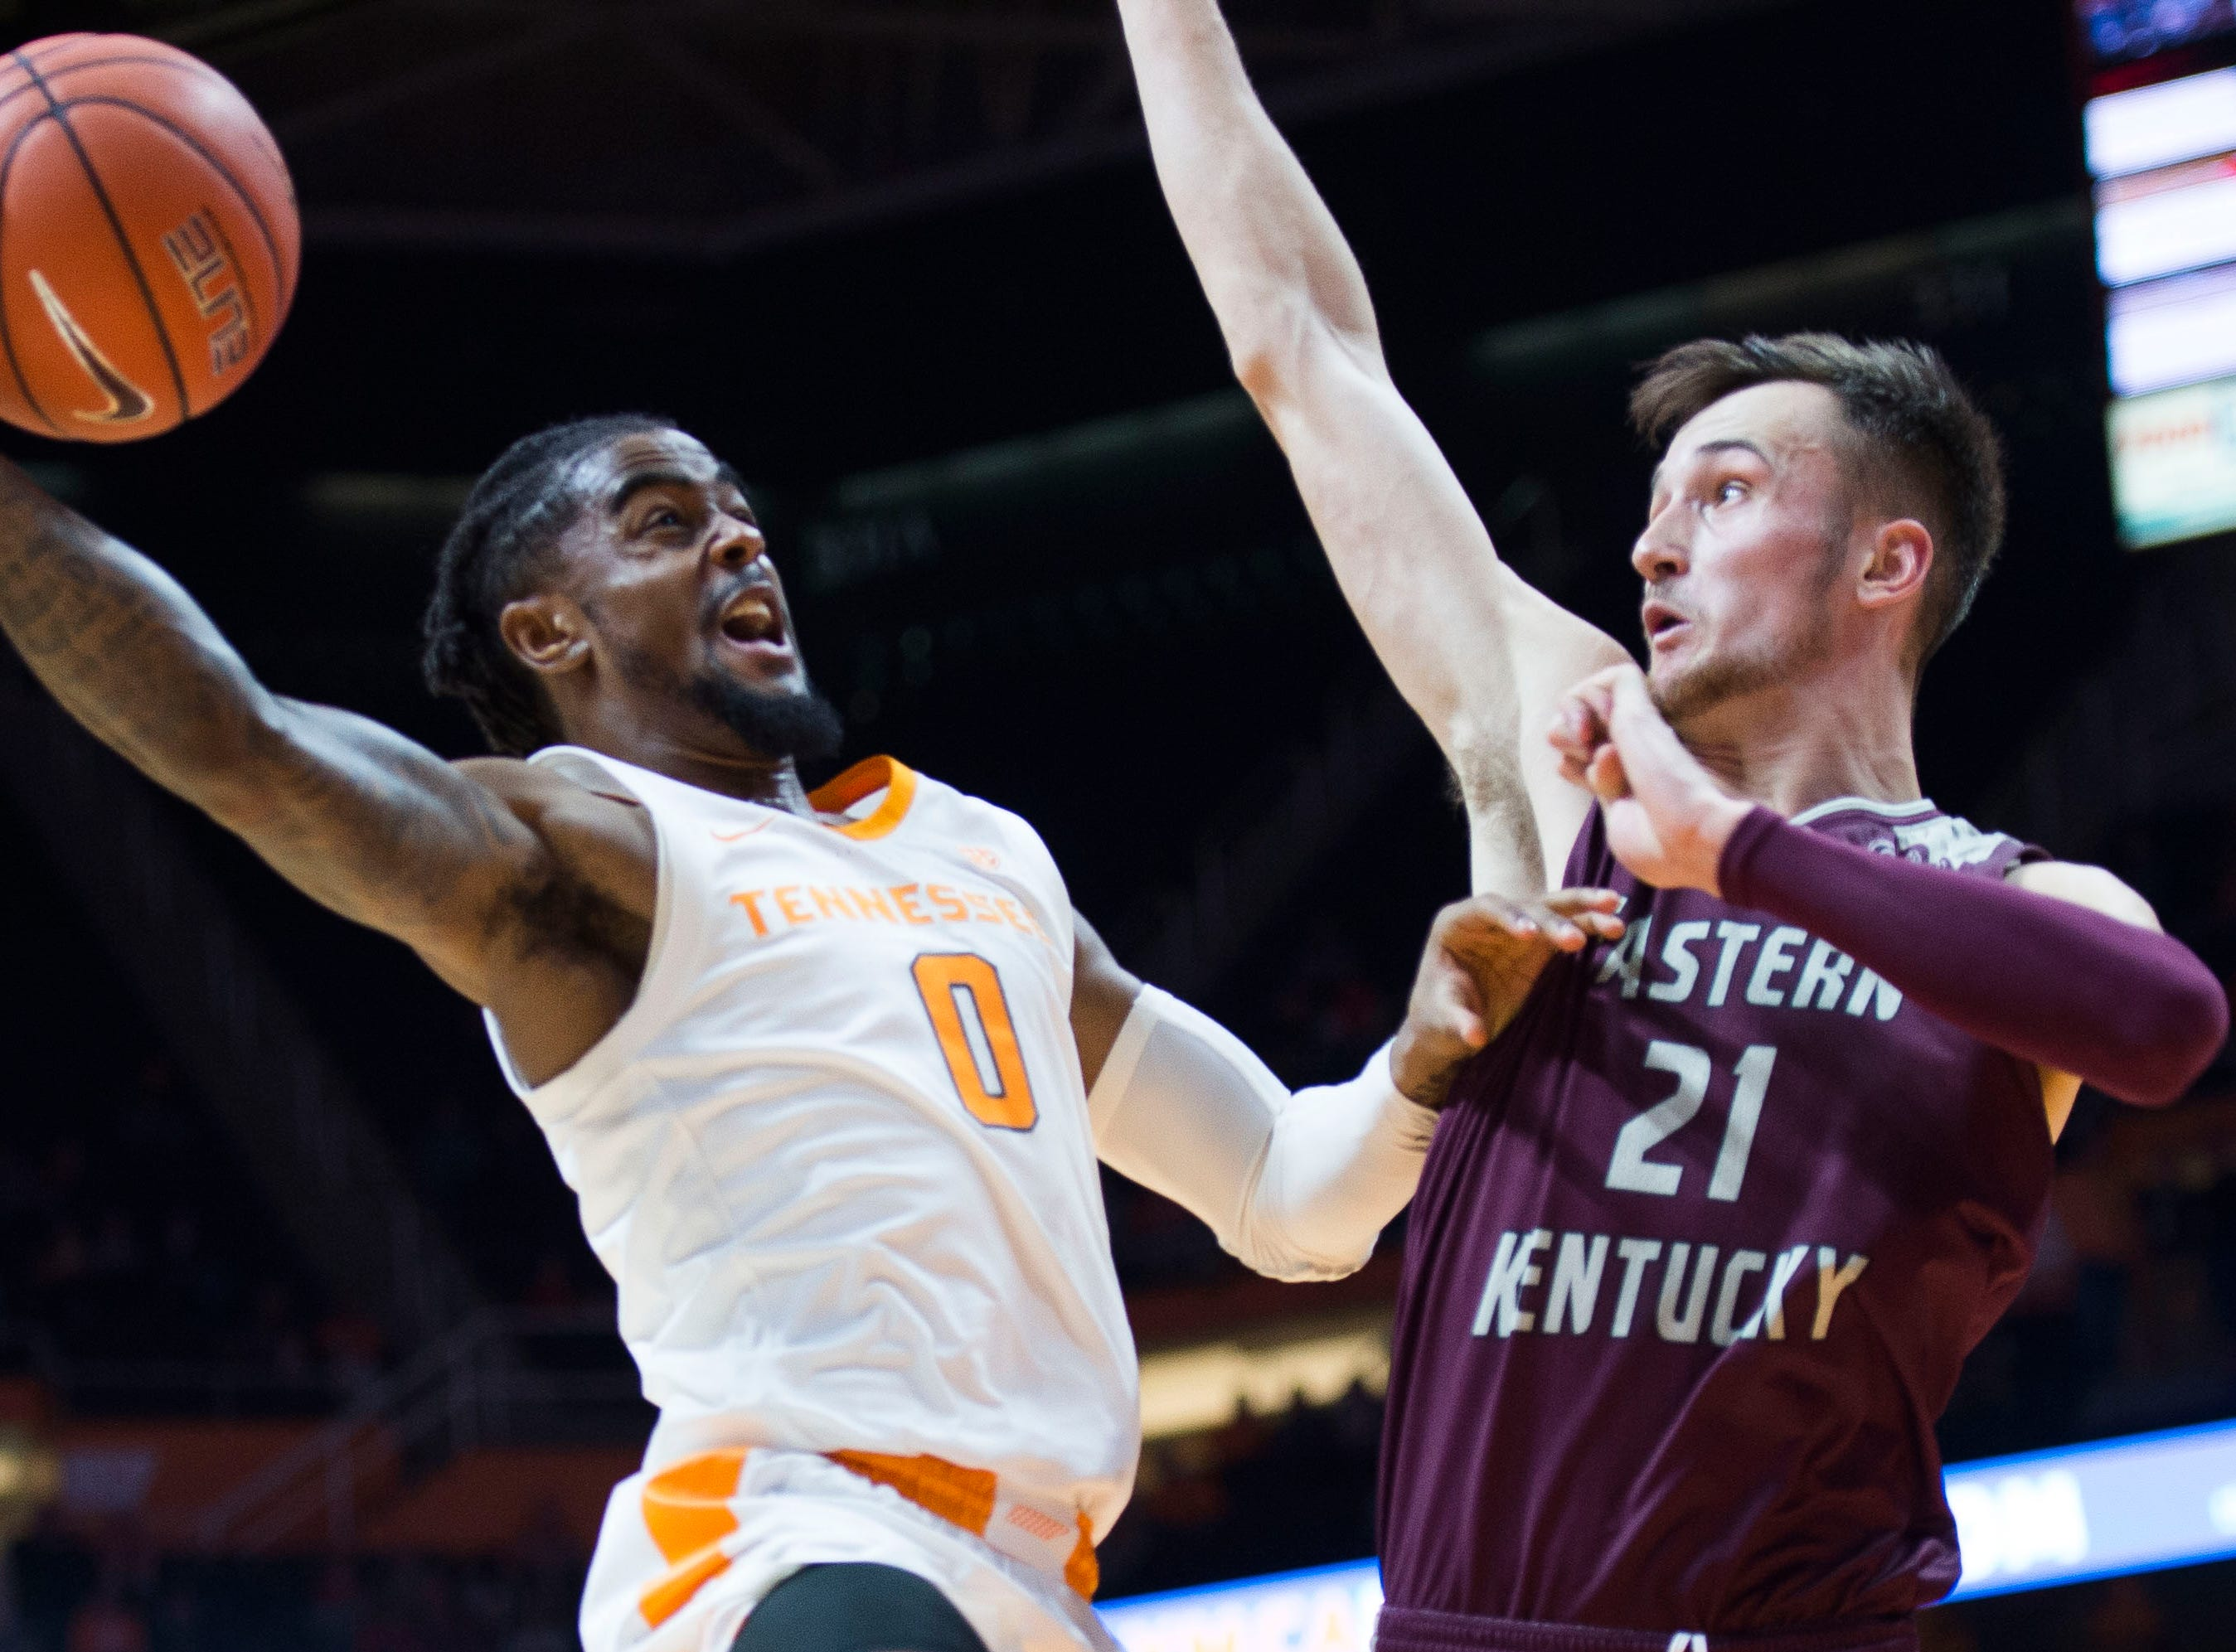 Tennessee's Jordan Bone (0) takes a shot while defended by EKU's Lachlan Anderson (21) during the first half of a NCAA men's basketball game between Tennessee and Eastern Kentucky University at Thompson-Boling Arena Wednesday, Nov. 28, 2018.